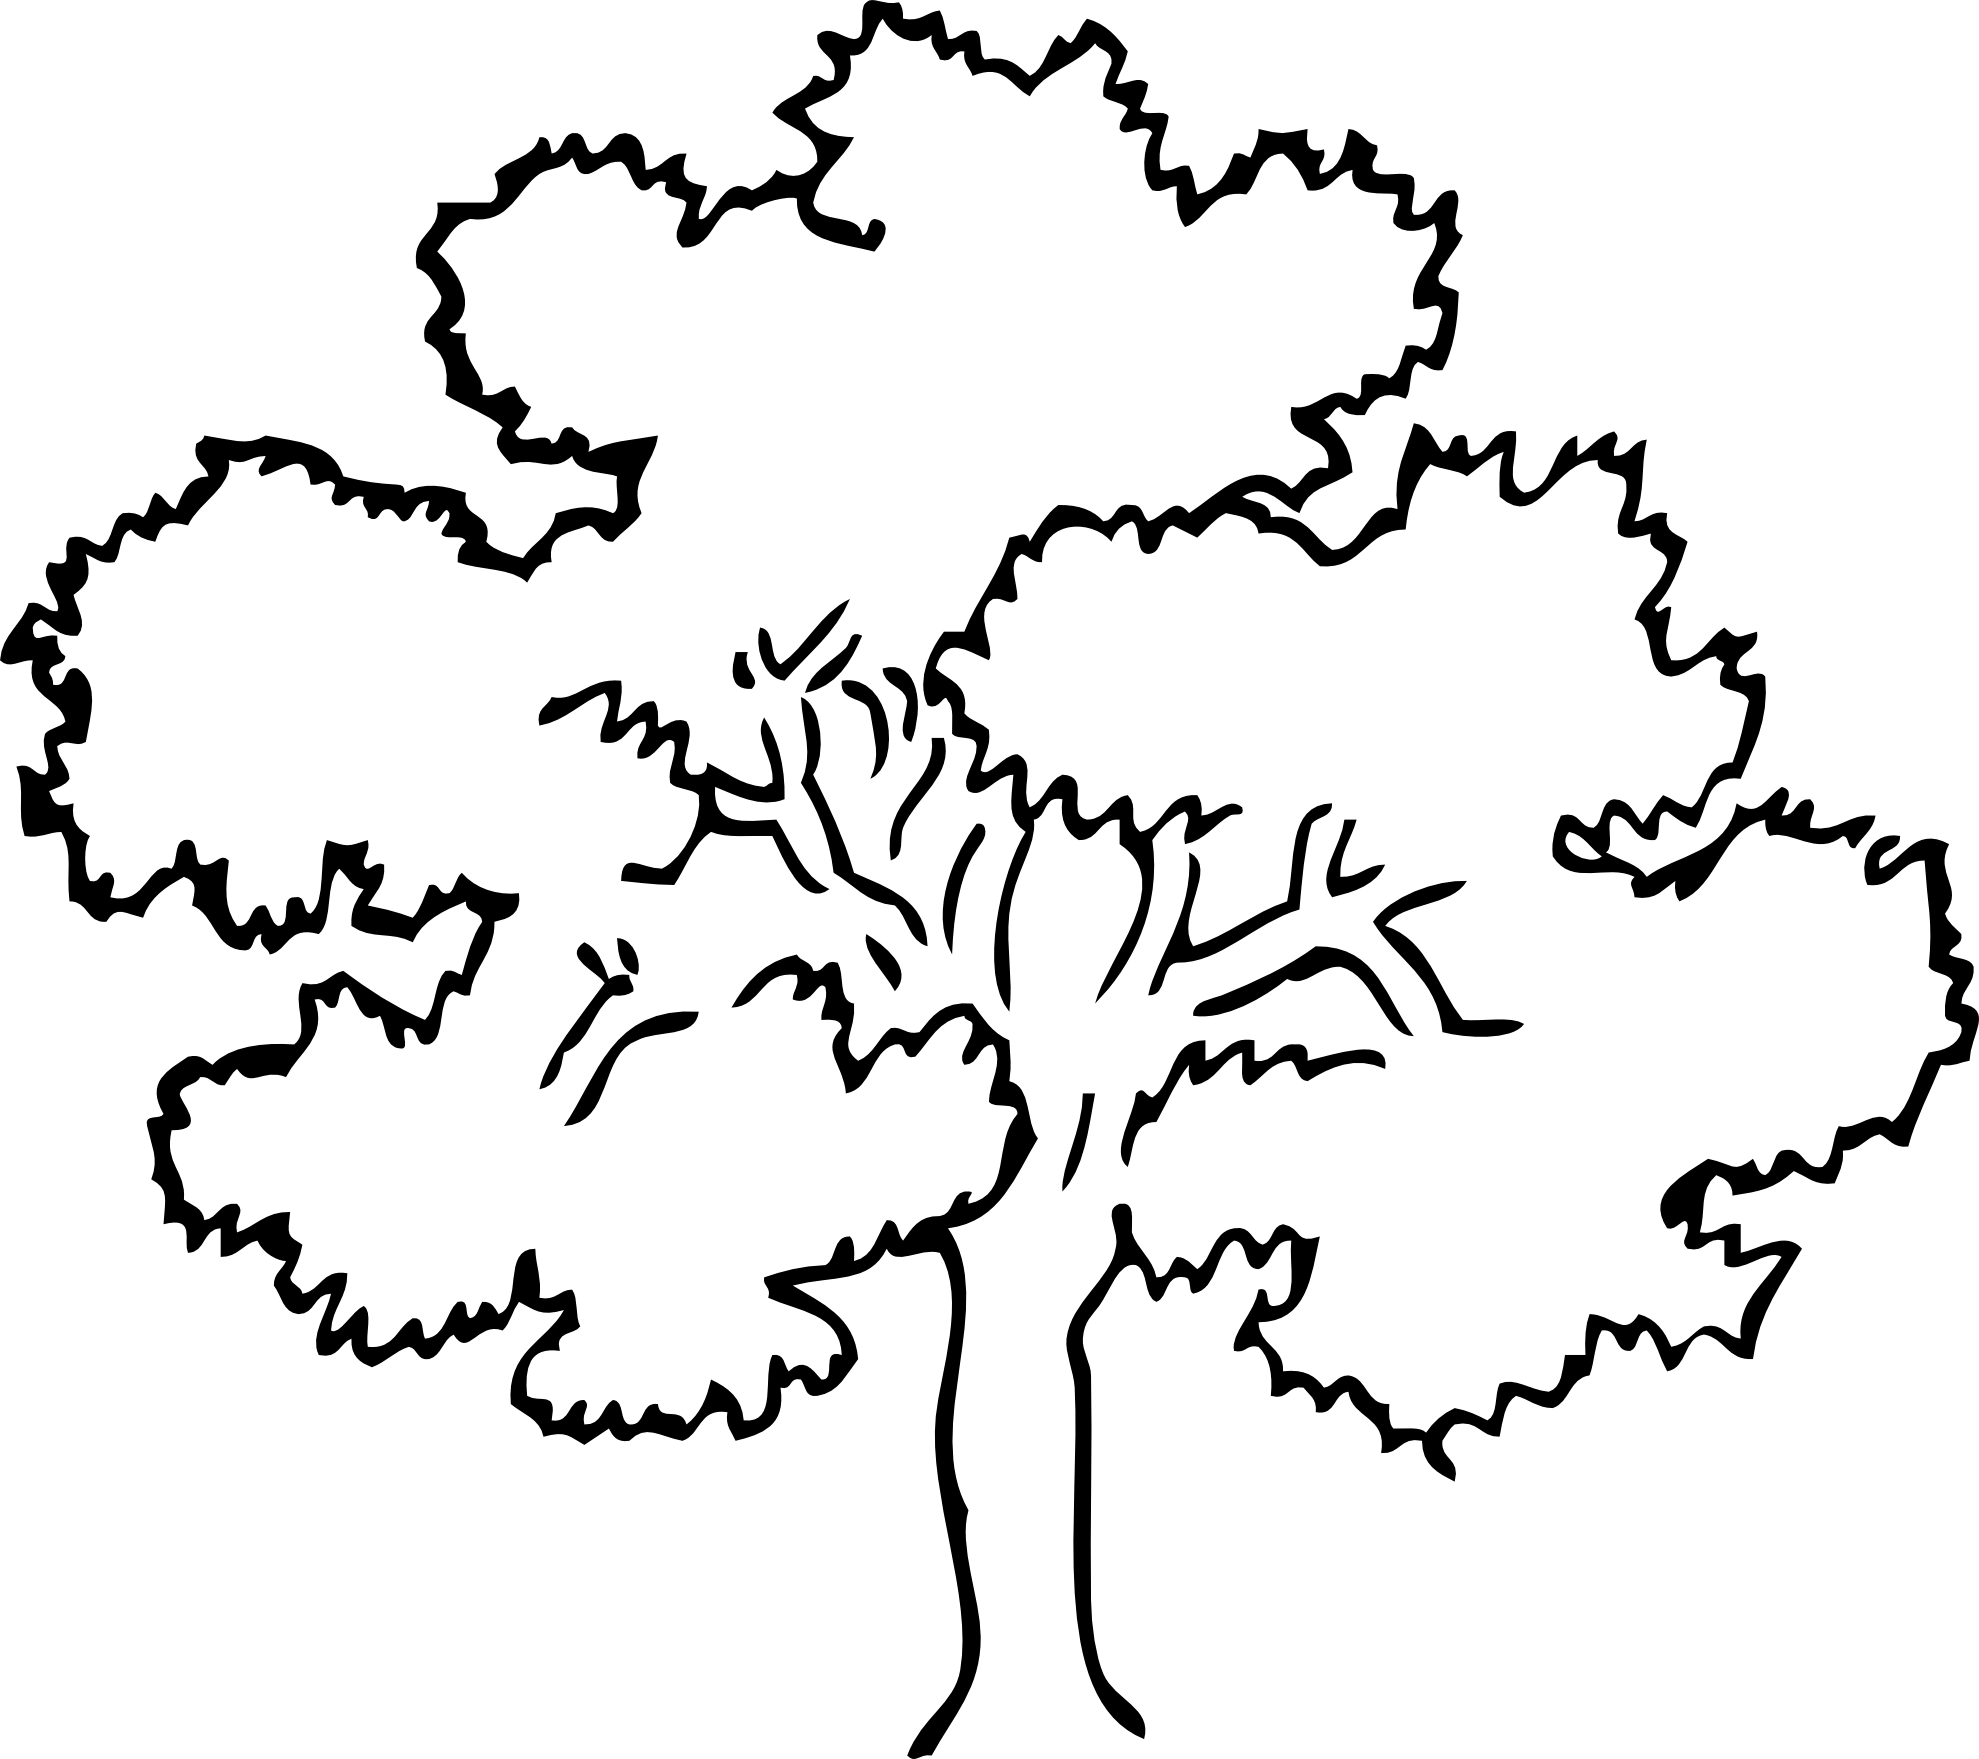 Tree black and white clipart png royalty free library 28+ Collection of Narra Tree Clipart Black And White | High quality ... png royalty free library